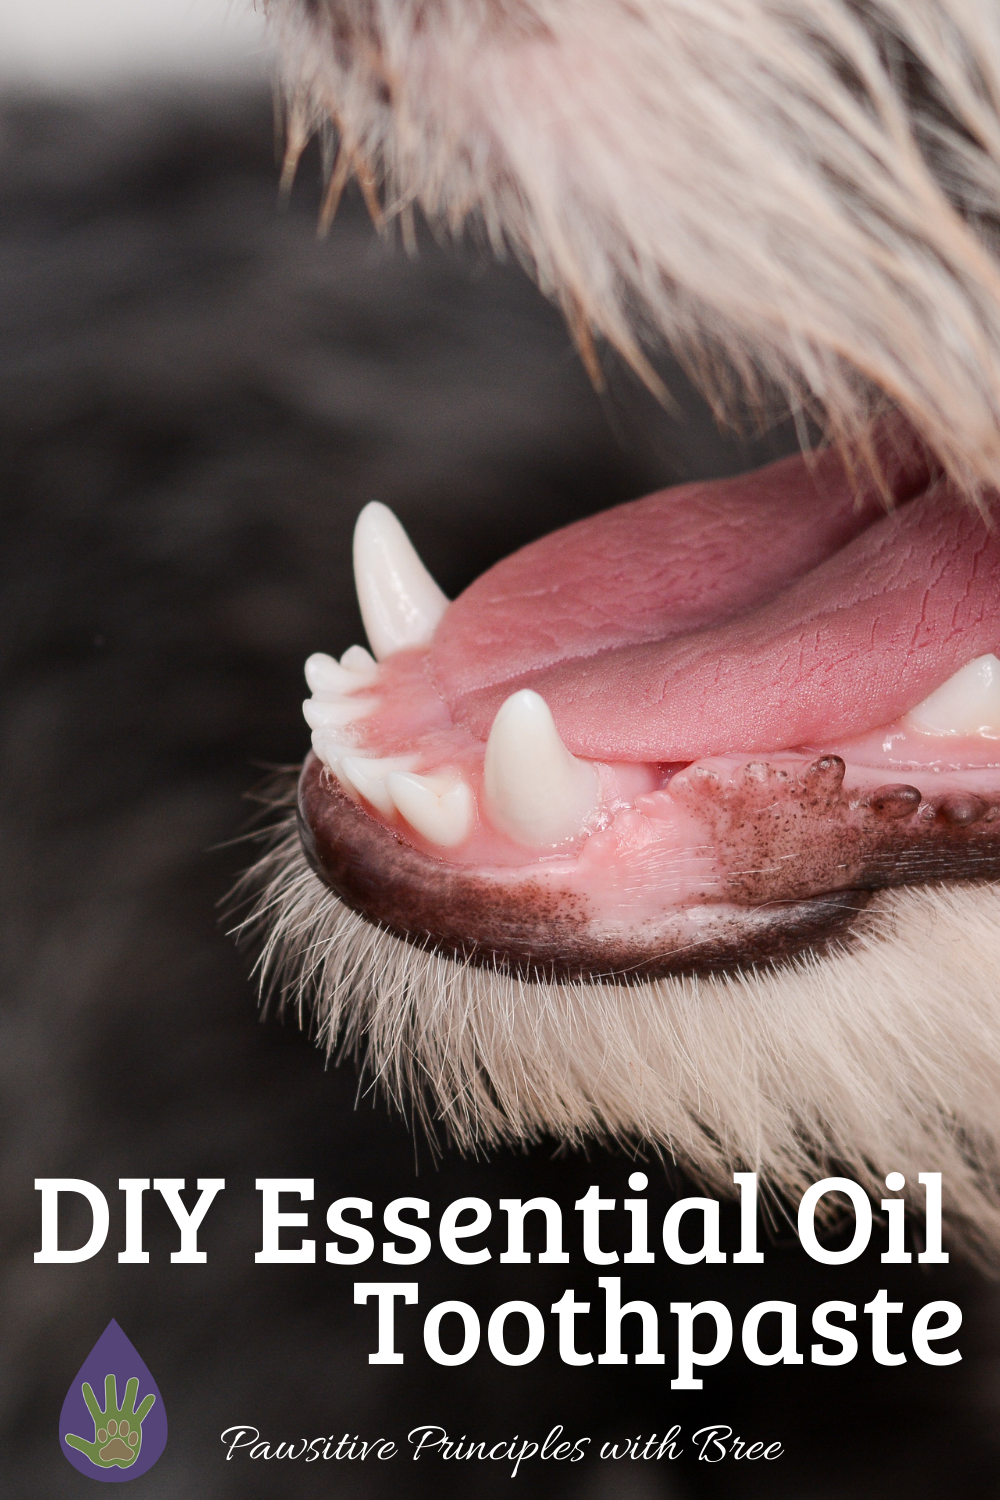 DIY Essential Oil Toothpaste for Dogs